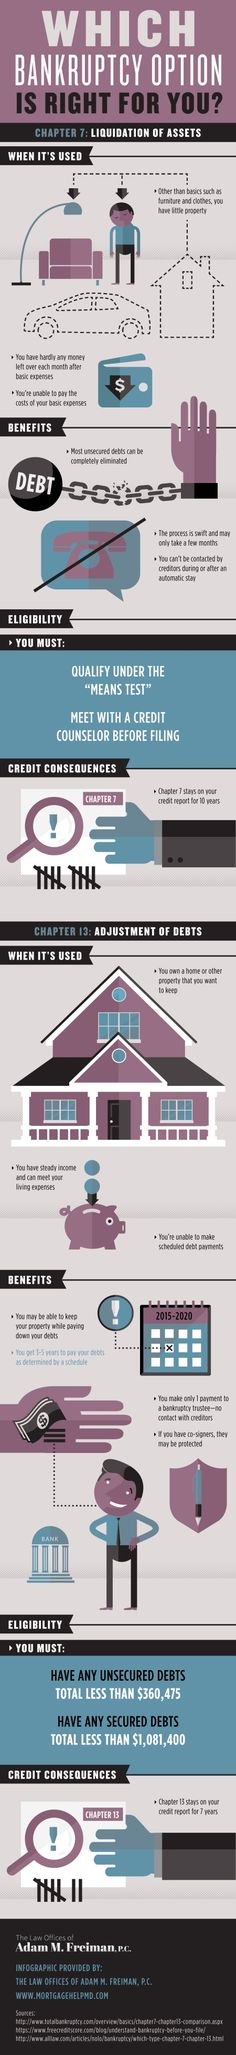 """Are you eligible to file for Chapter 7 bankruptcy? People must meet with a credit counselor before filing to see if they qualify under the """"means test."""" Take a look at this Baltimore bankruptcy attorney infographic to get more details!"""